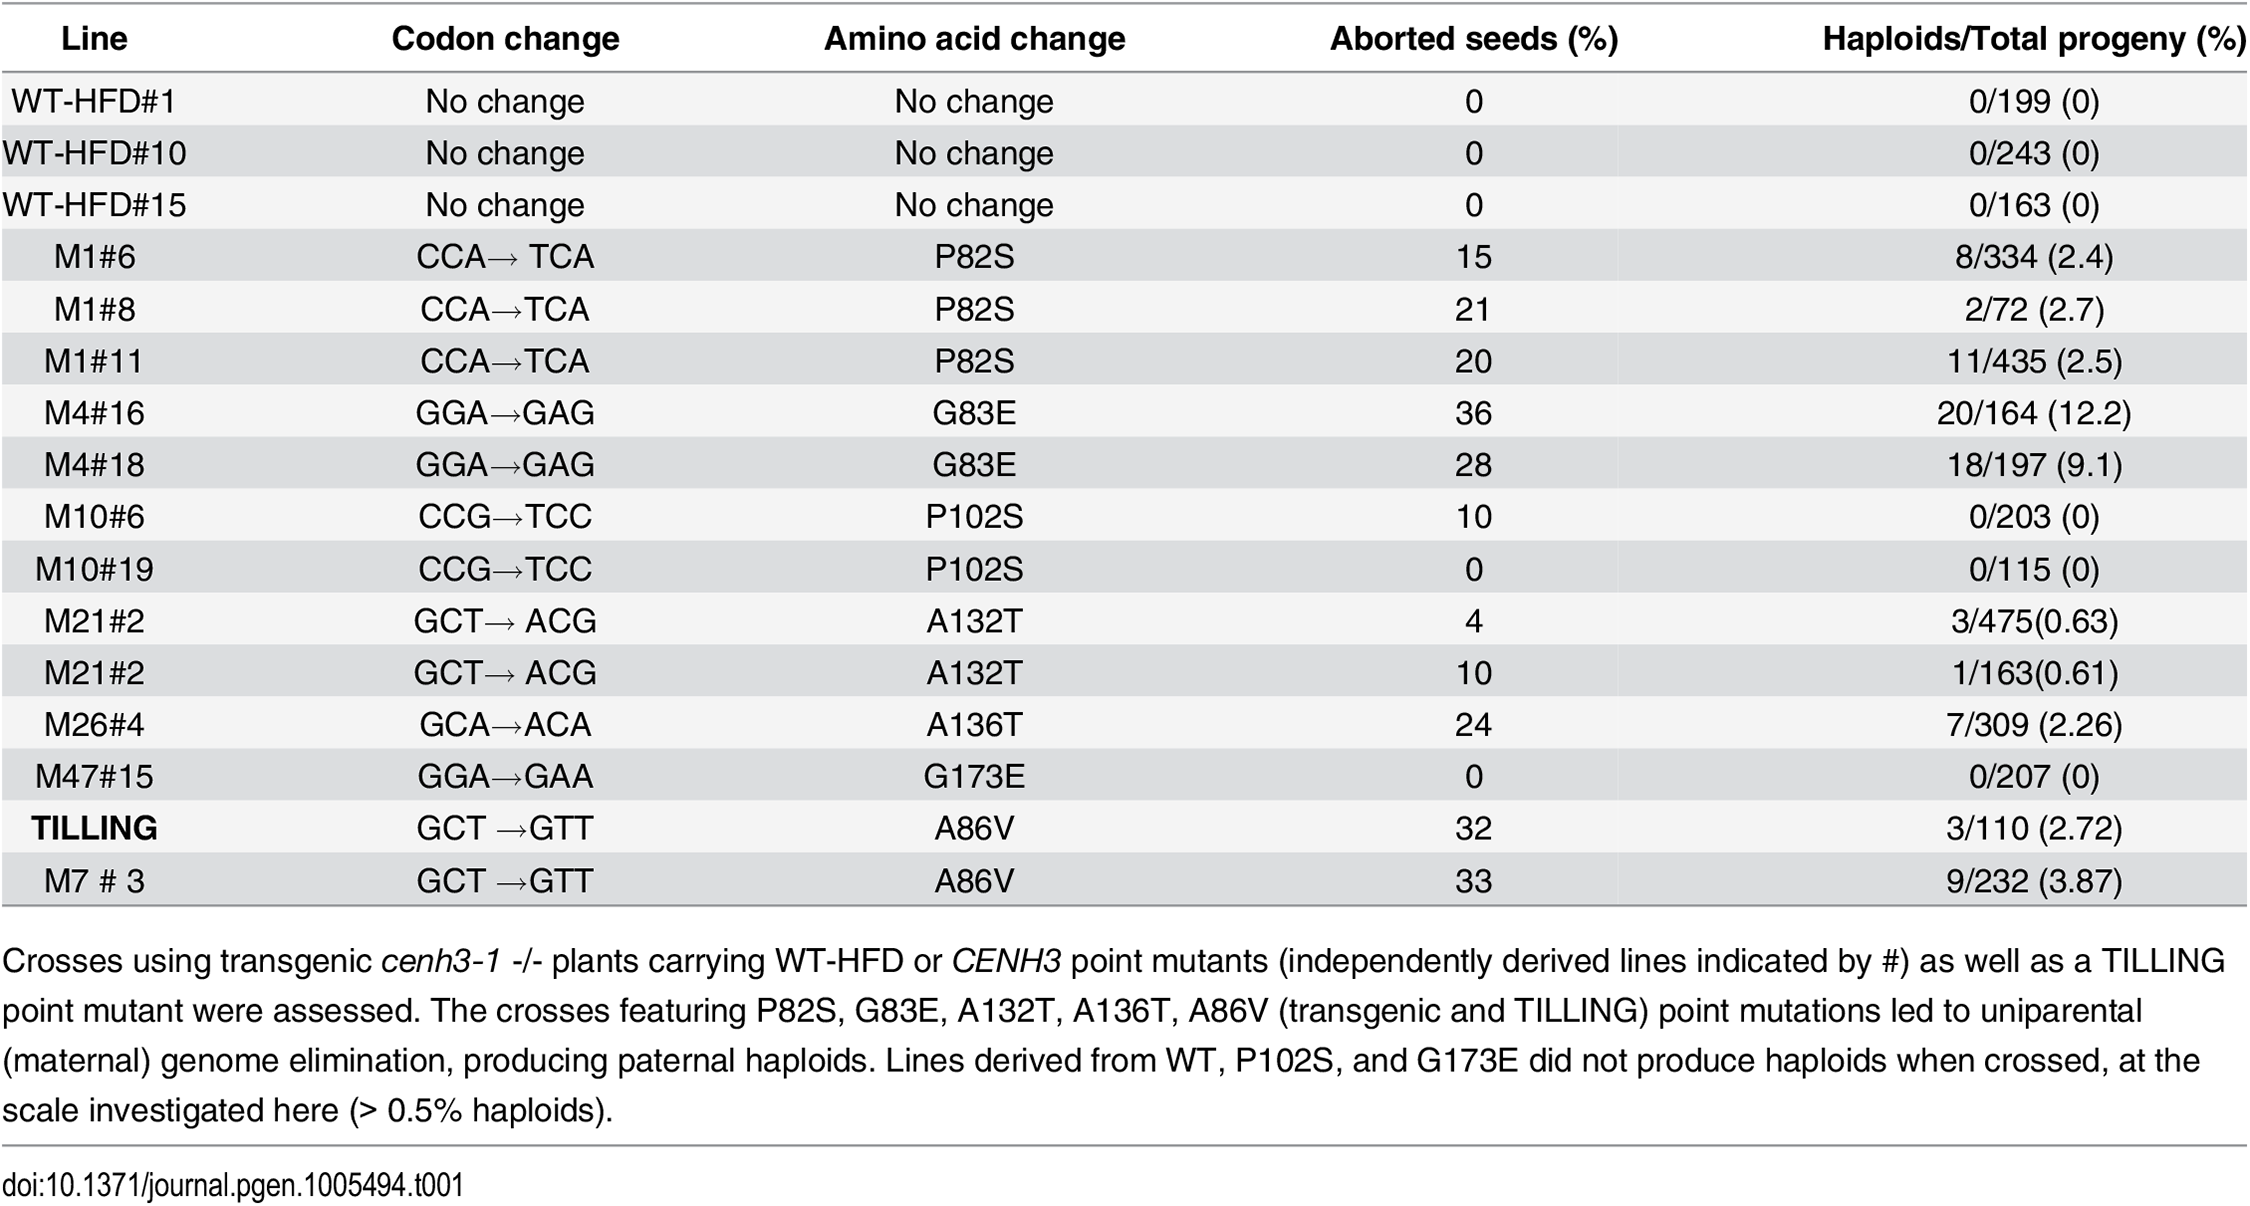 Haploid induction and seed abortion frequency of transgenic and TILLING lines used in this study.